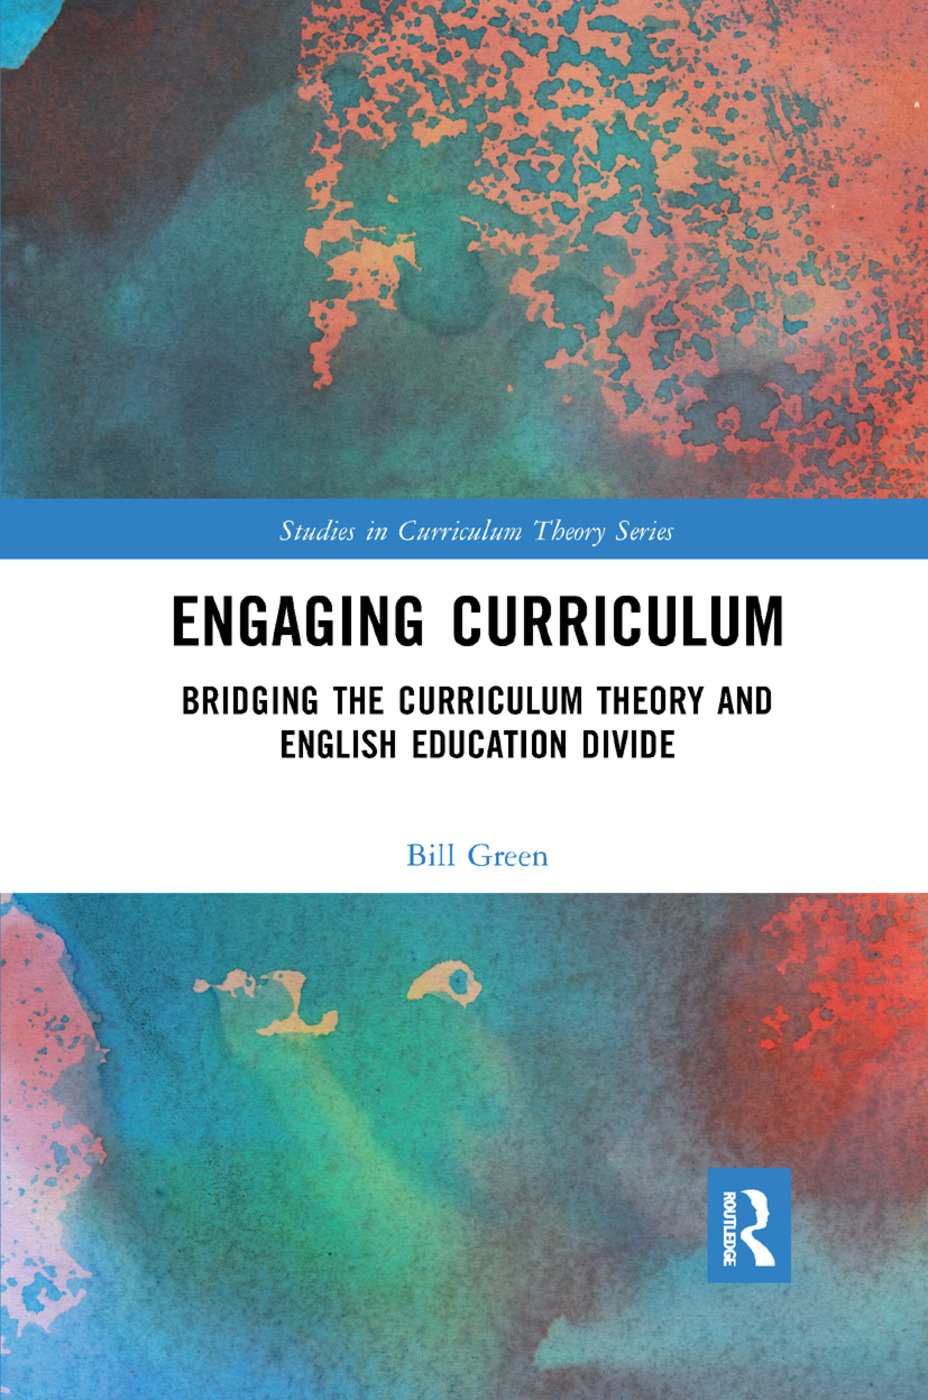 Engaging Curriculum: Bridging the Curriculum Theory and English Education Divide book cover